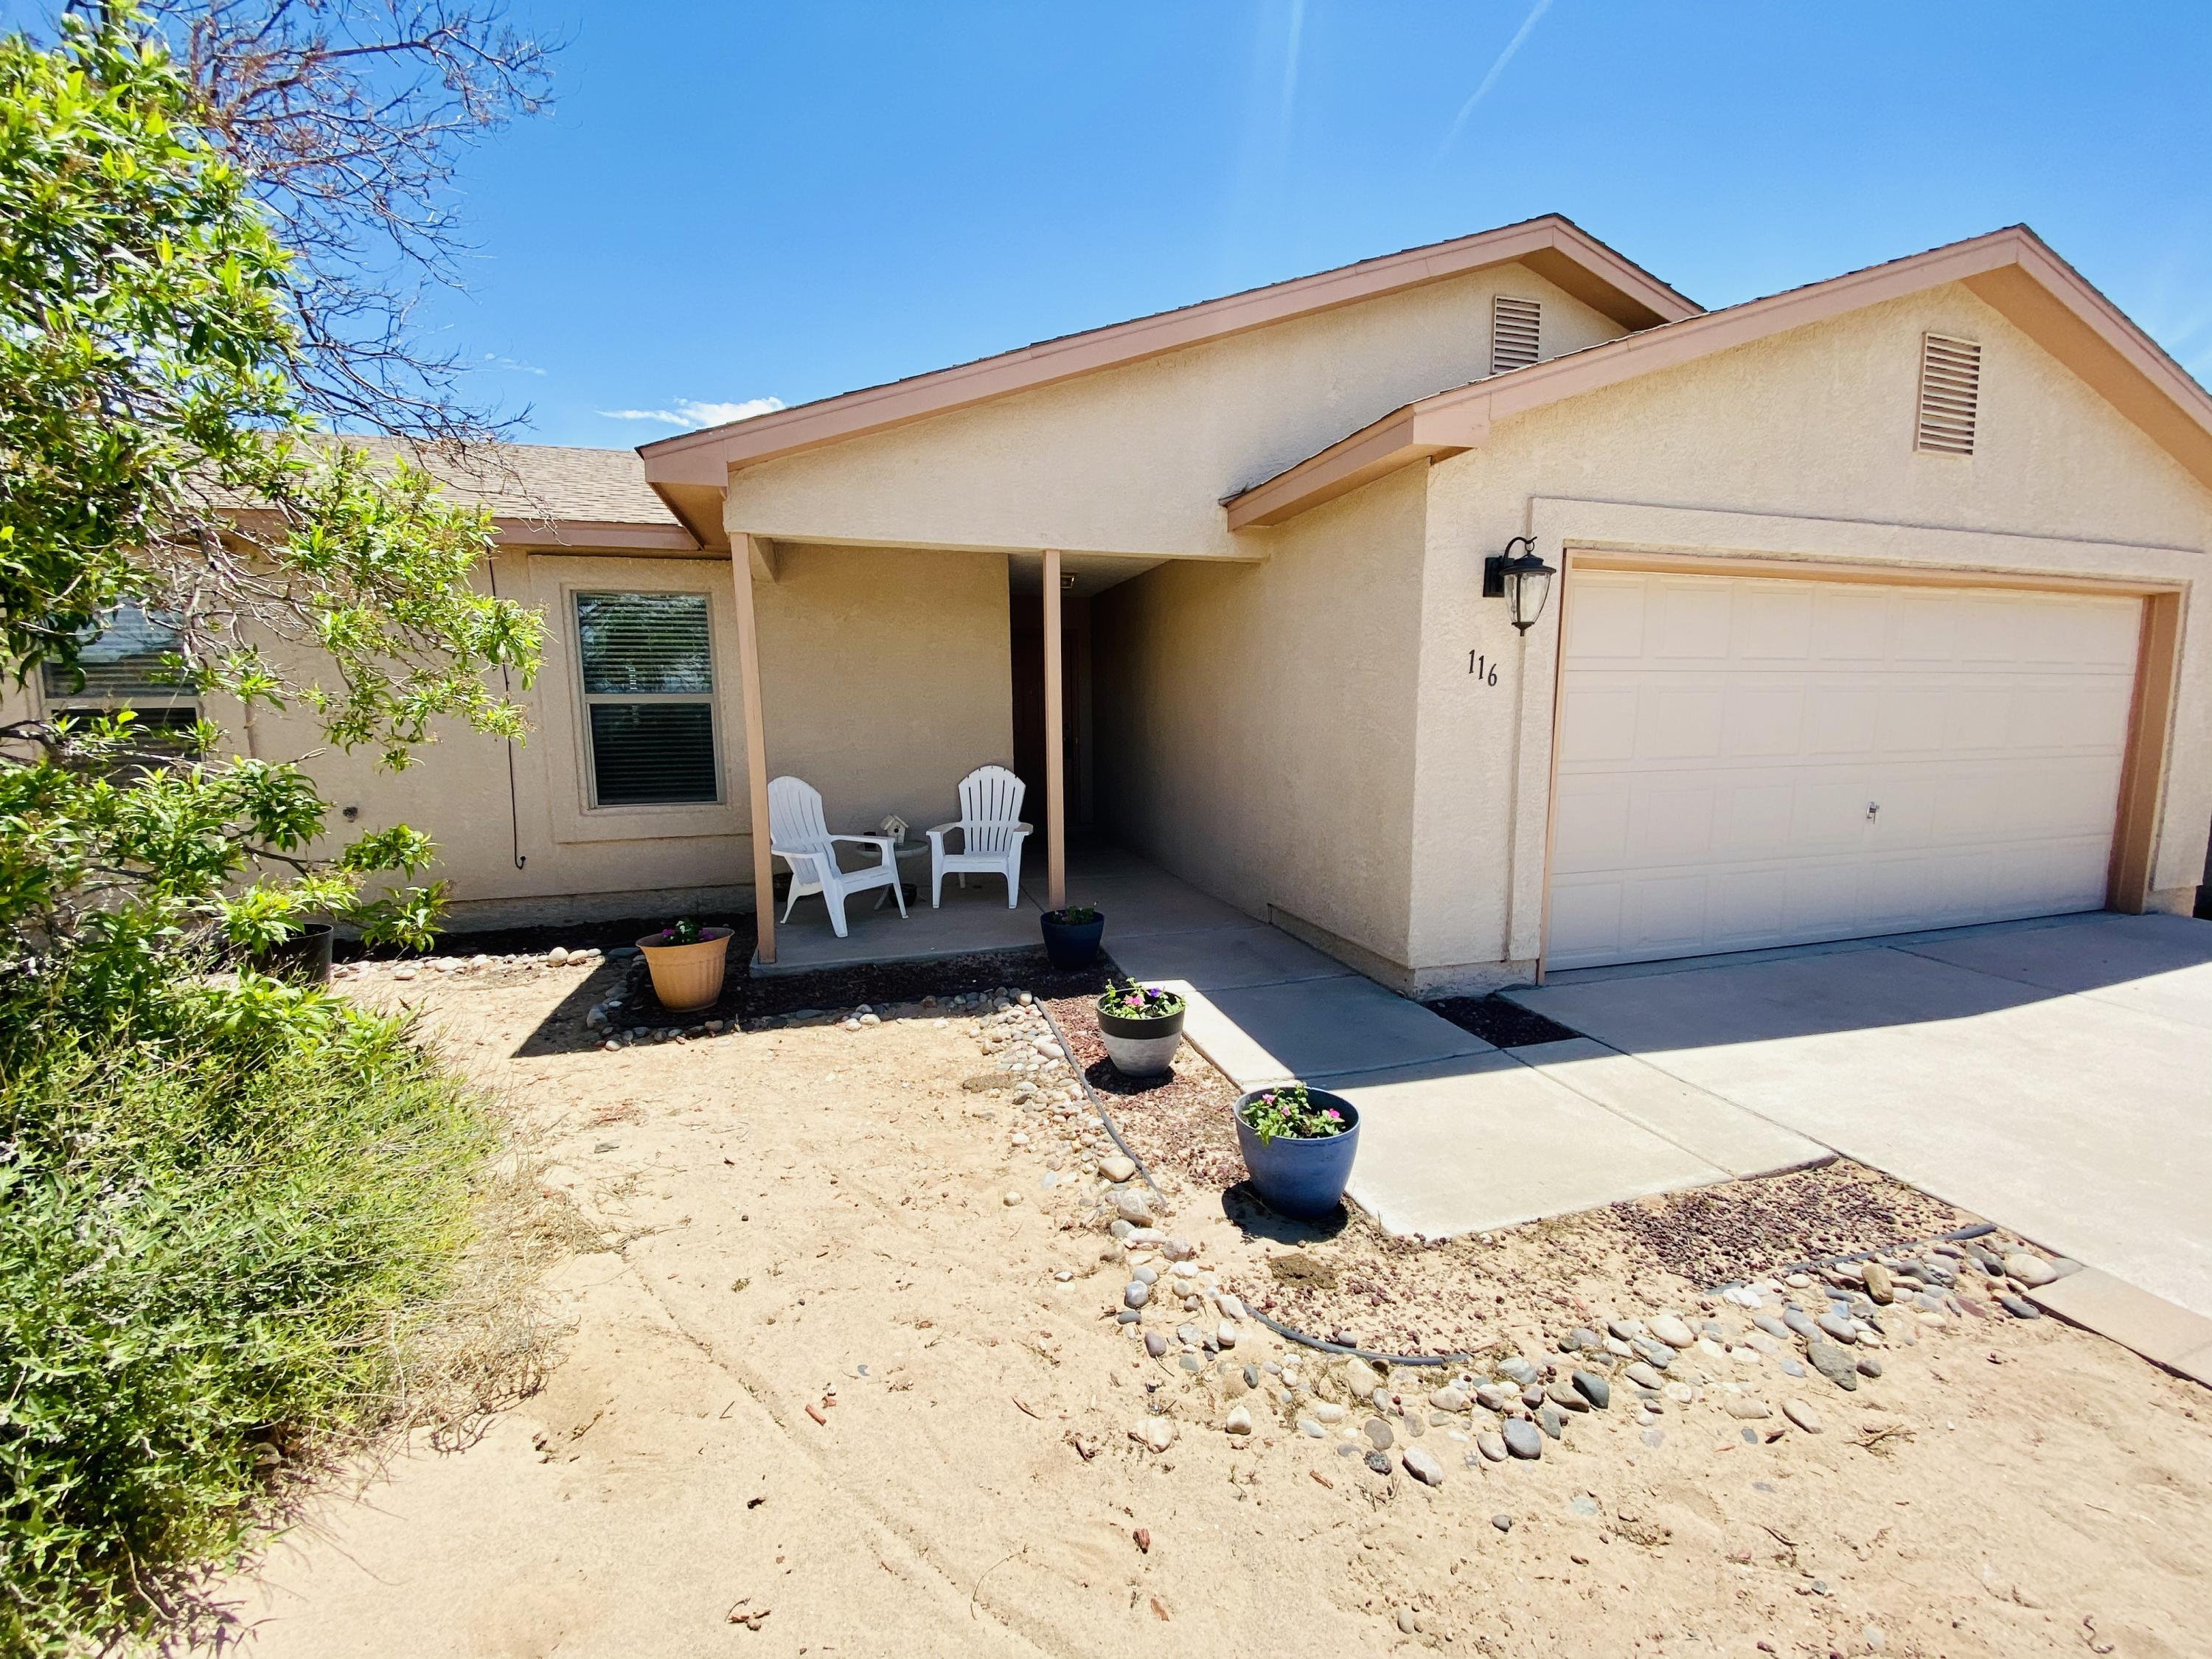 Views, Views, Views! Cute 3 bedroom home located on a quite street, situated on a half acre lot, with backyard access!  Interior features ceramic tile and laminate wood floors.  This home is clean and move in ready! Do not miss your chance at this West Rio Rancho Gem!